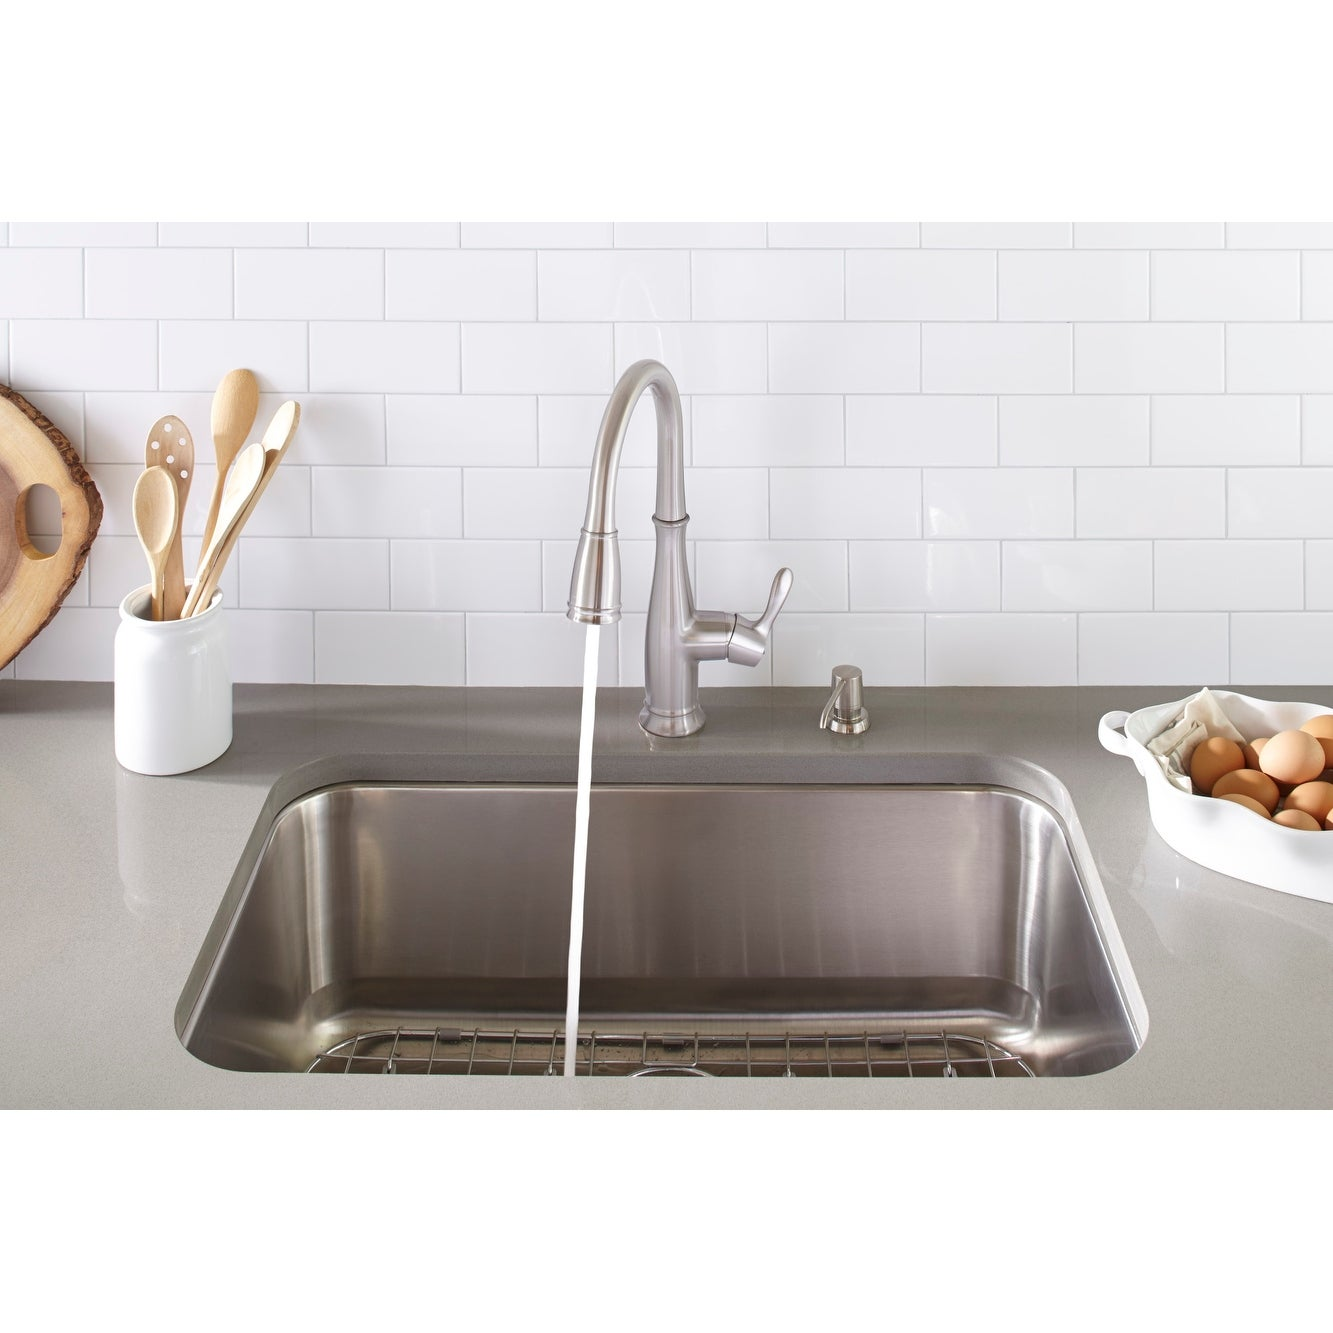 Mirabelle Mirxccd100 Cordelia 1 8 Gpm Single Hole Pull Down Kitchen Faucet